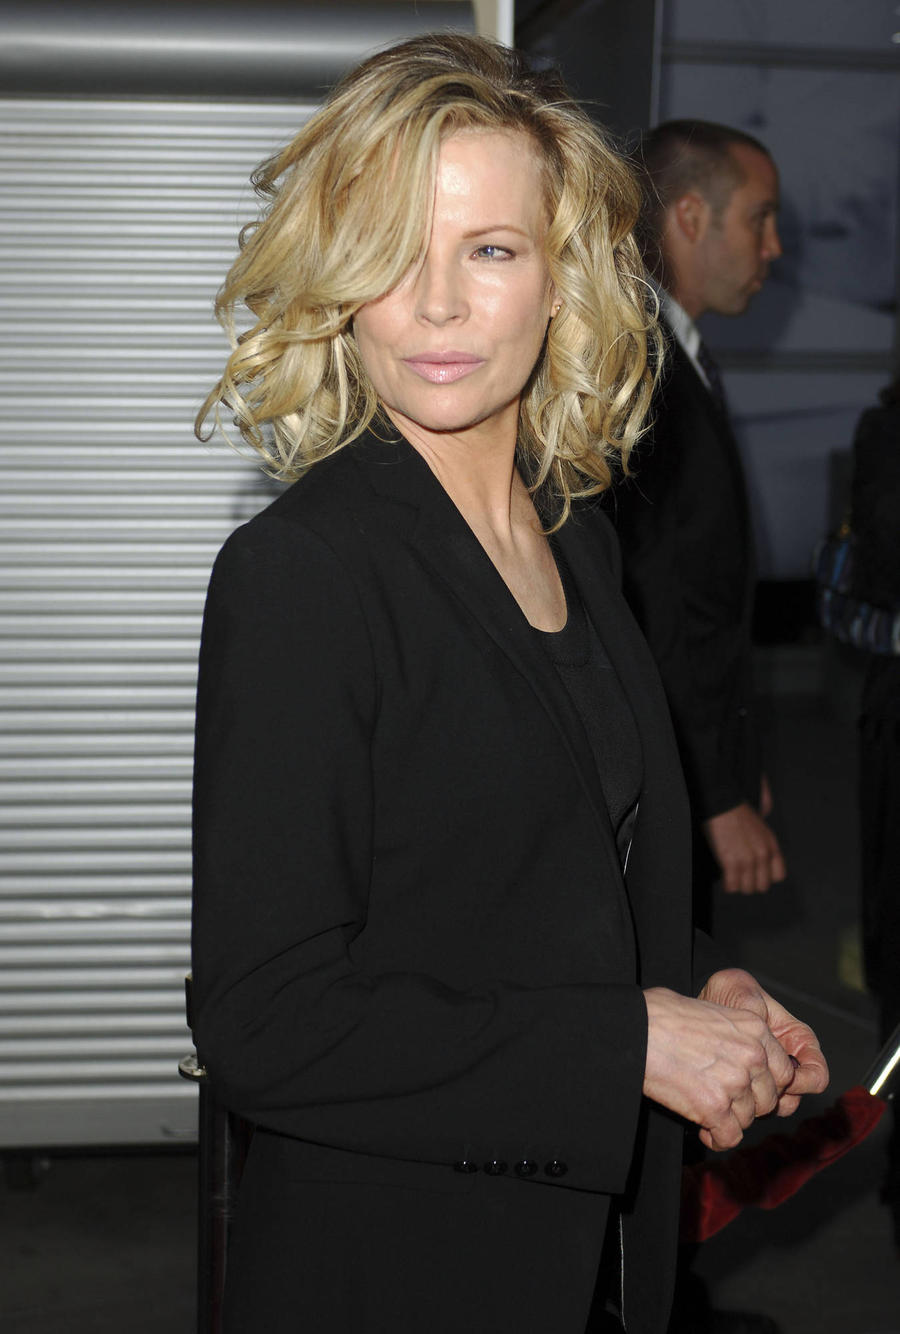 Kim Basinger Joining Fifty Shades Of Grey Sequel